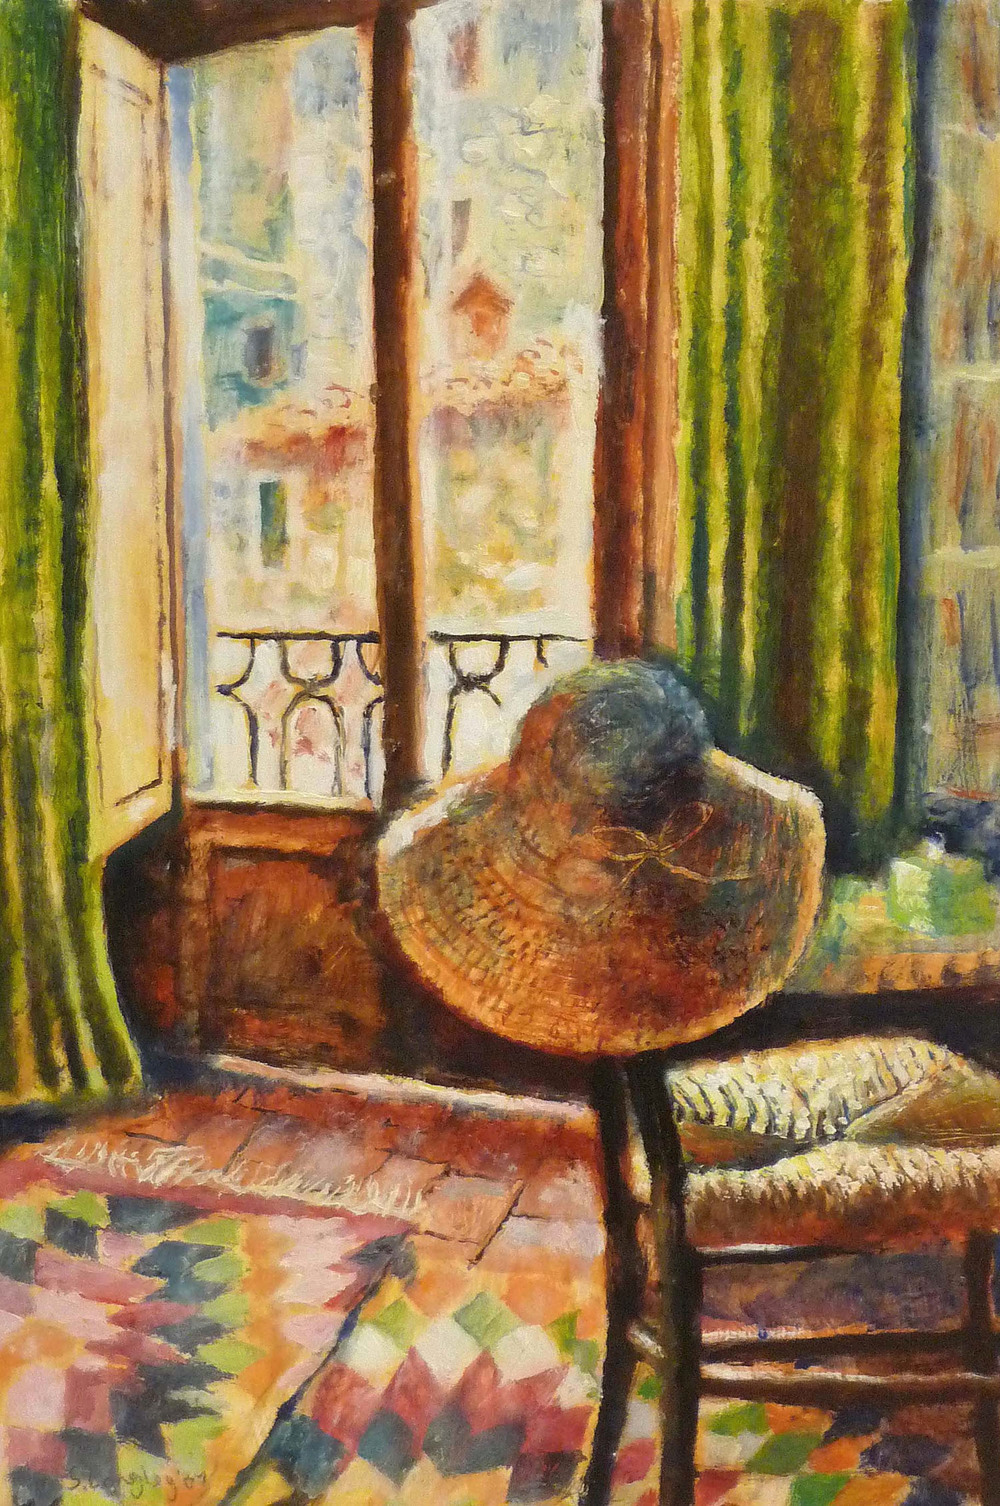 Sarah Longly_-_The Sun Hat_oil on board_45 x 31cm.jpg